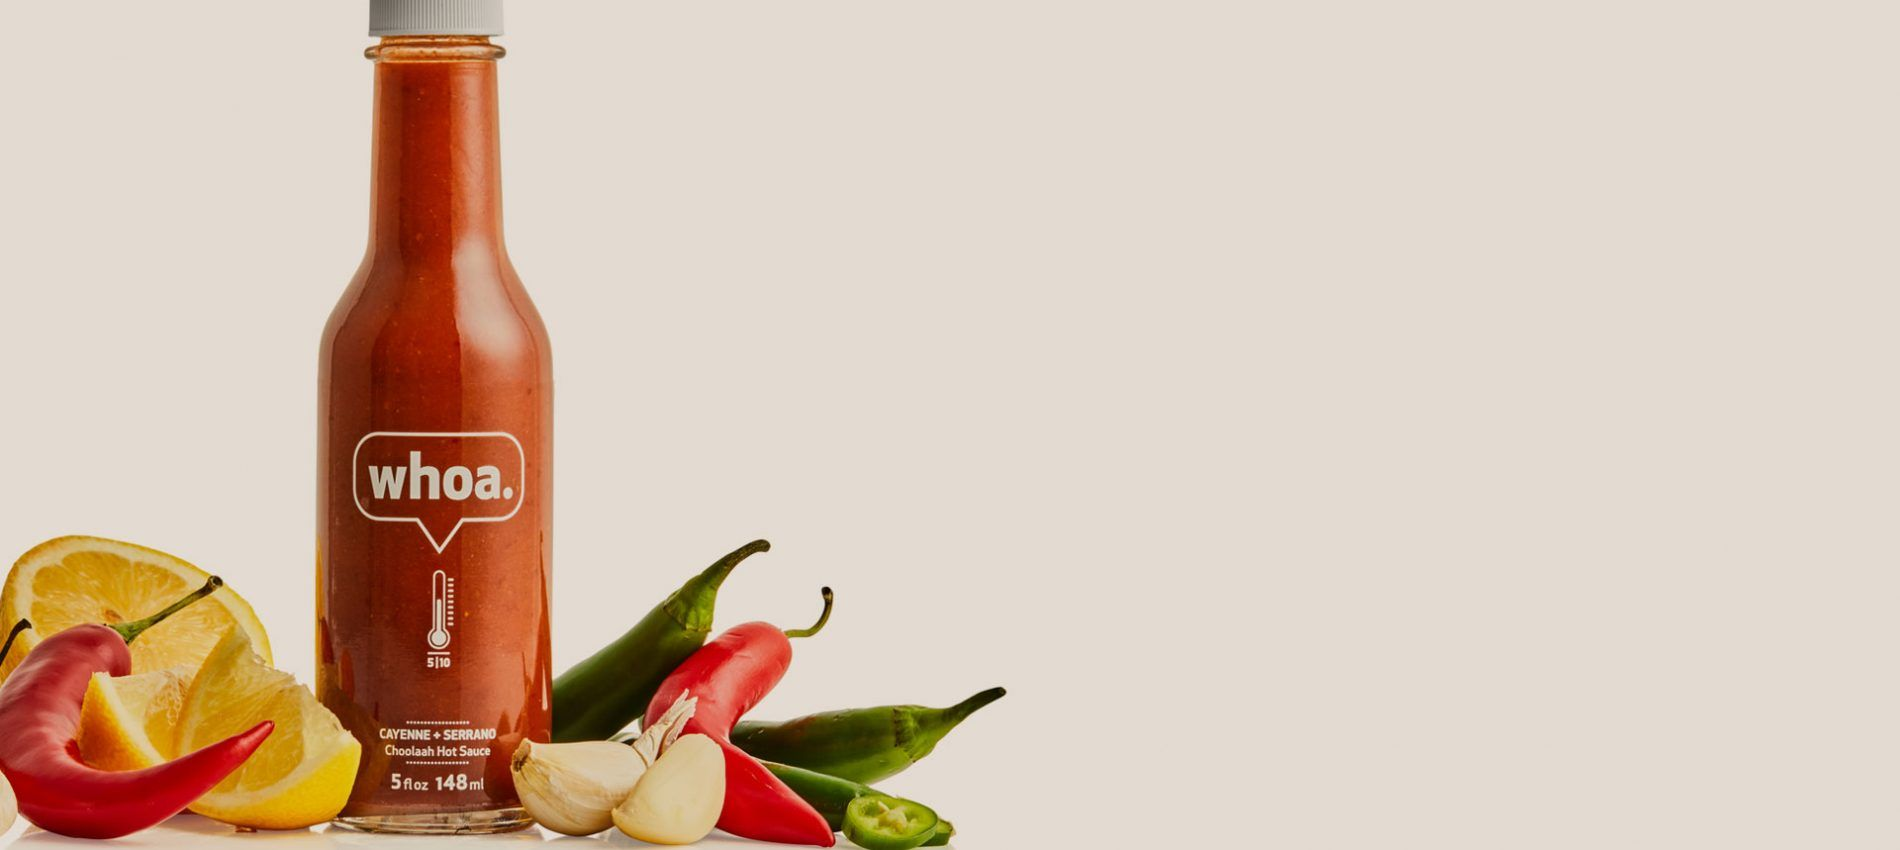 whoa hot sauce bottle with lemon, garlic and cayenne peppers